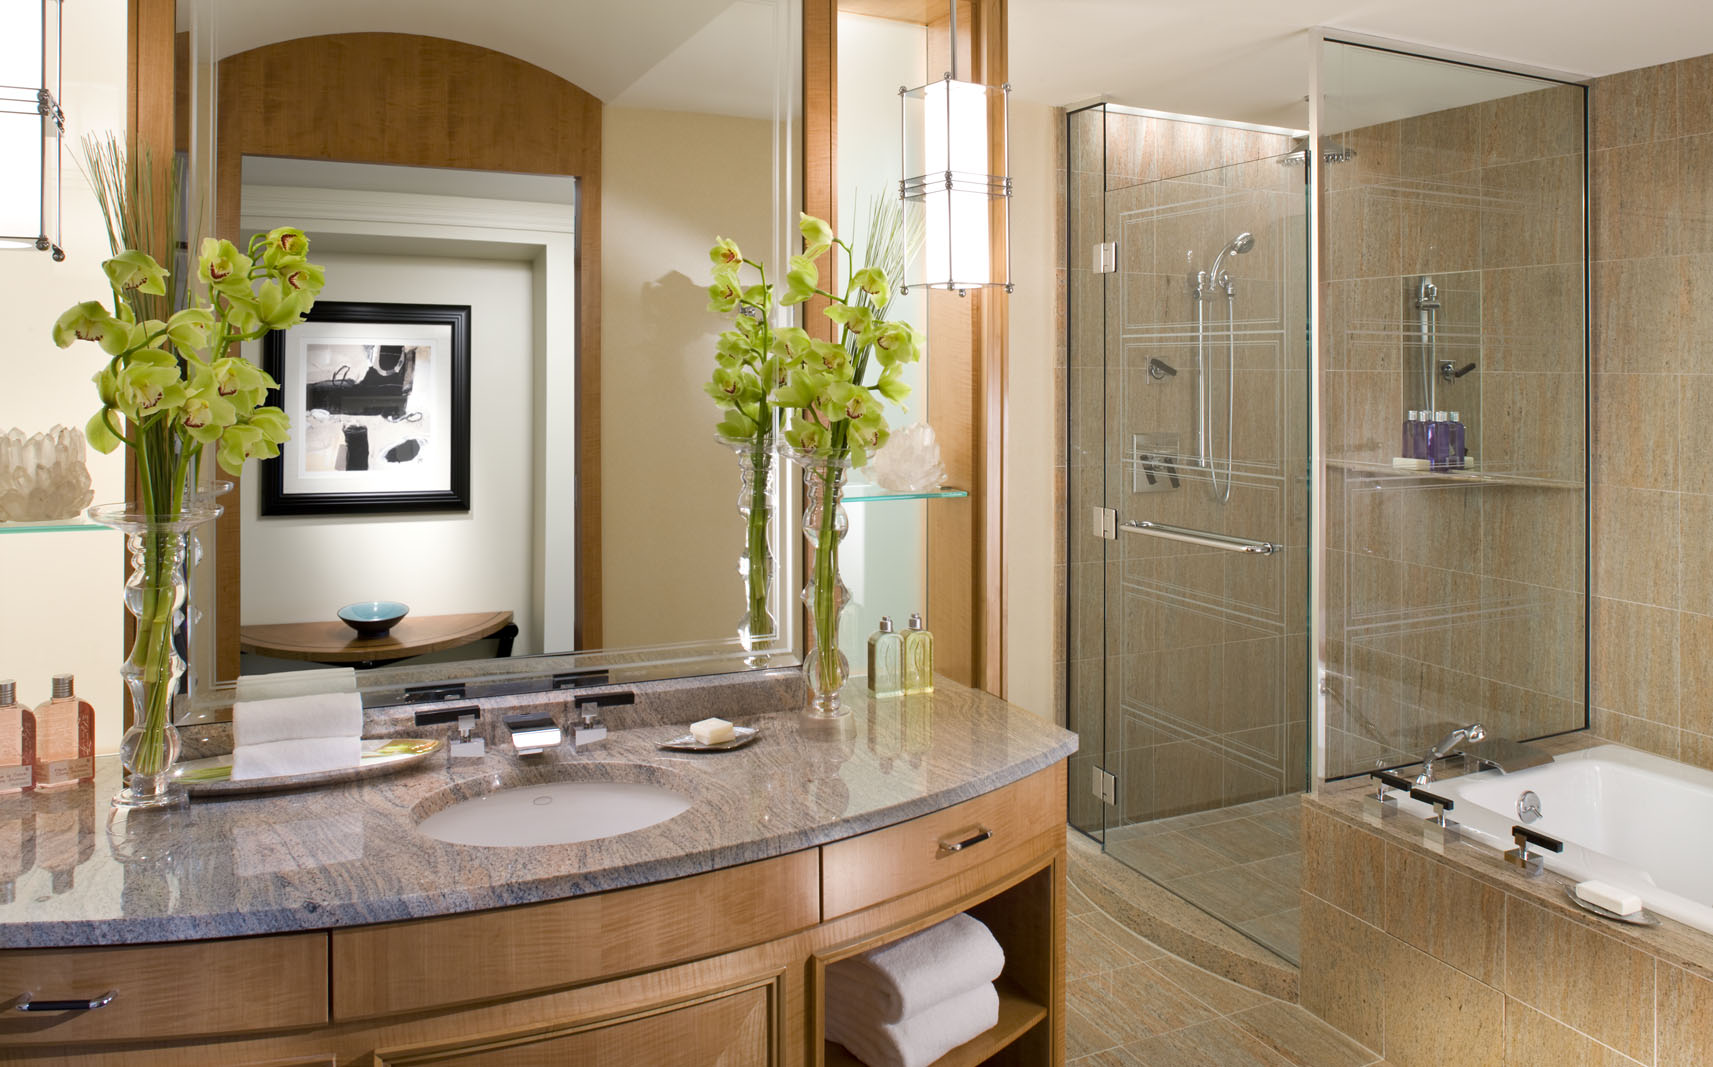 Best Hotel Bathrooms when nature calls: a guide to boston's best hotel bathrooms